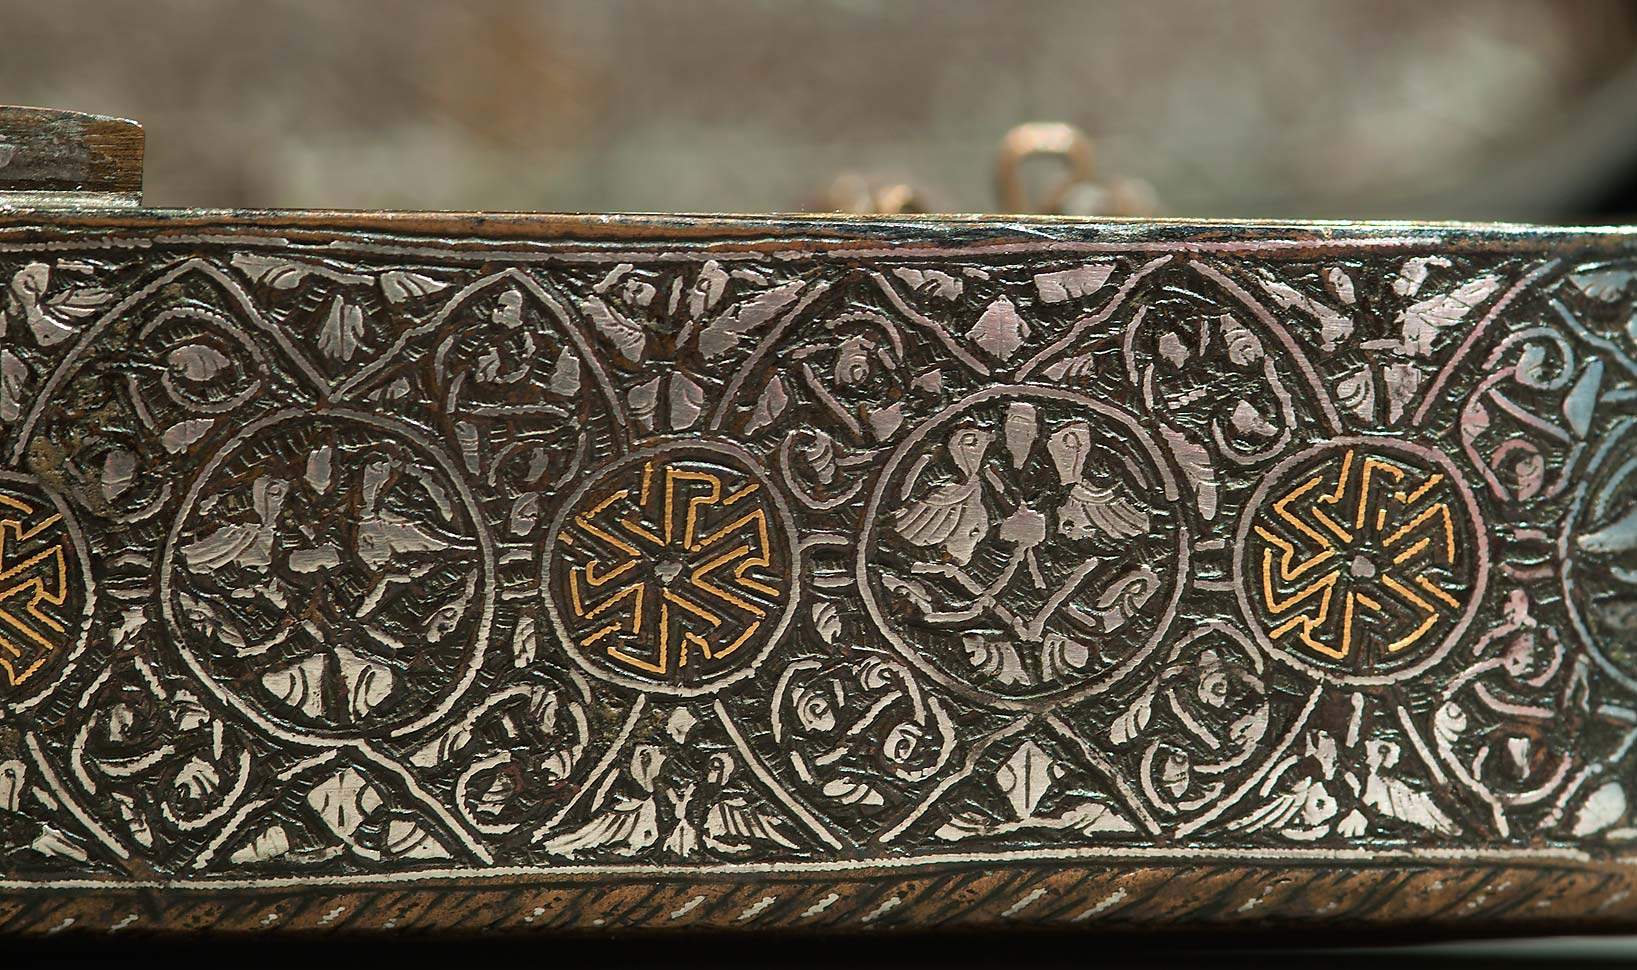 Pen case (Syria, 14th century, brass) on display in Museum of Islamic Art. Doha, Qatar